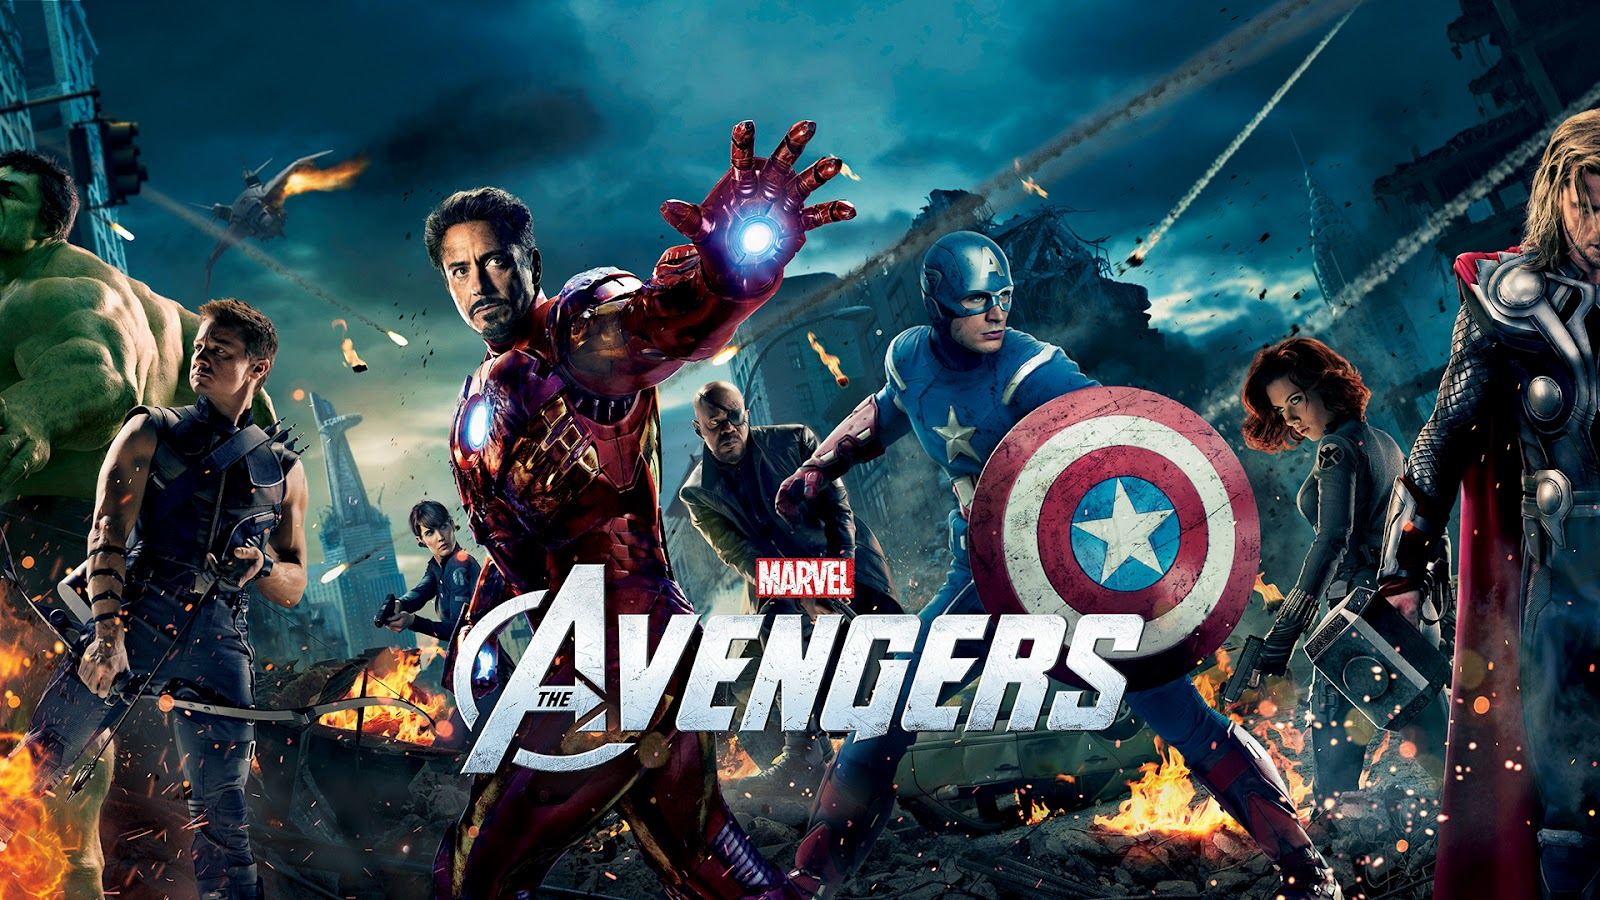 Hd Wallpapers The Avengers Hd Wallpapers 1600x900